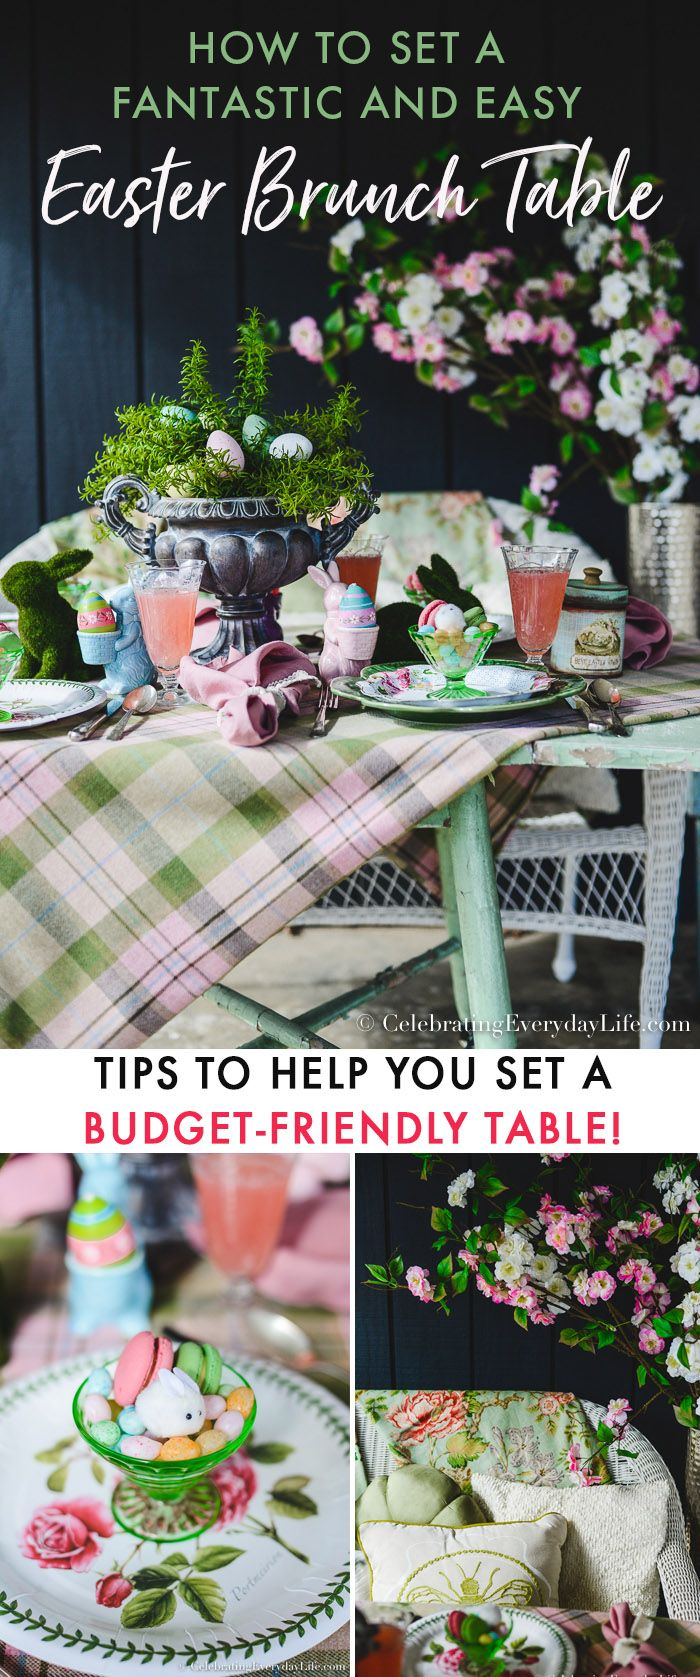 How to Set a Fantastic and Easy Easter Brunch Table. Easy and budget-friendly ideas to set a Beautiful Easter table this year! via @jencarrollva